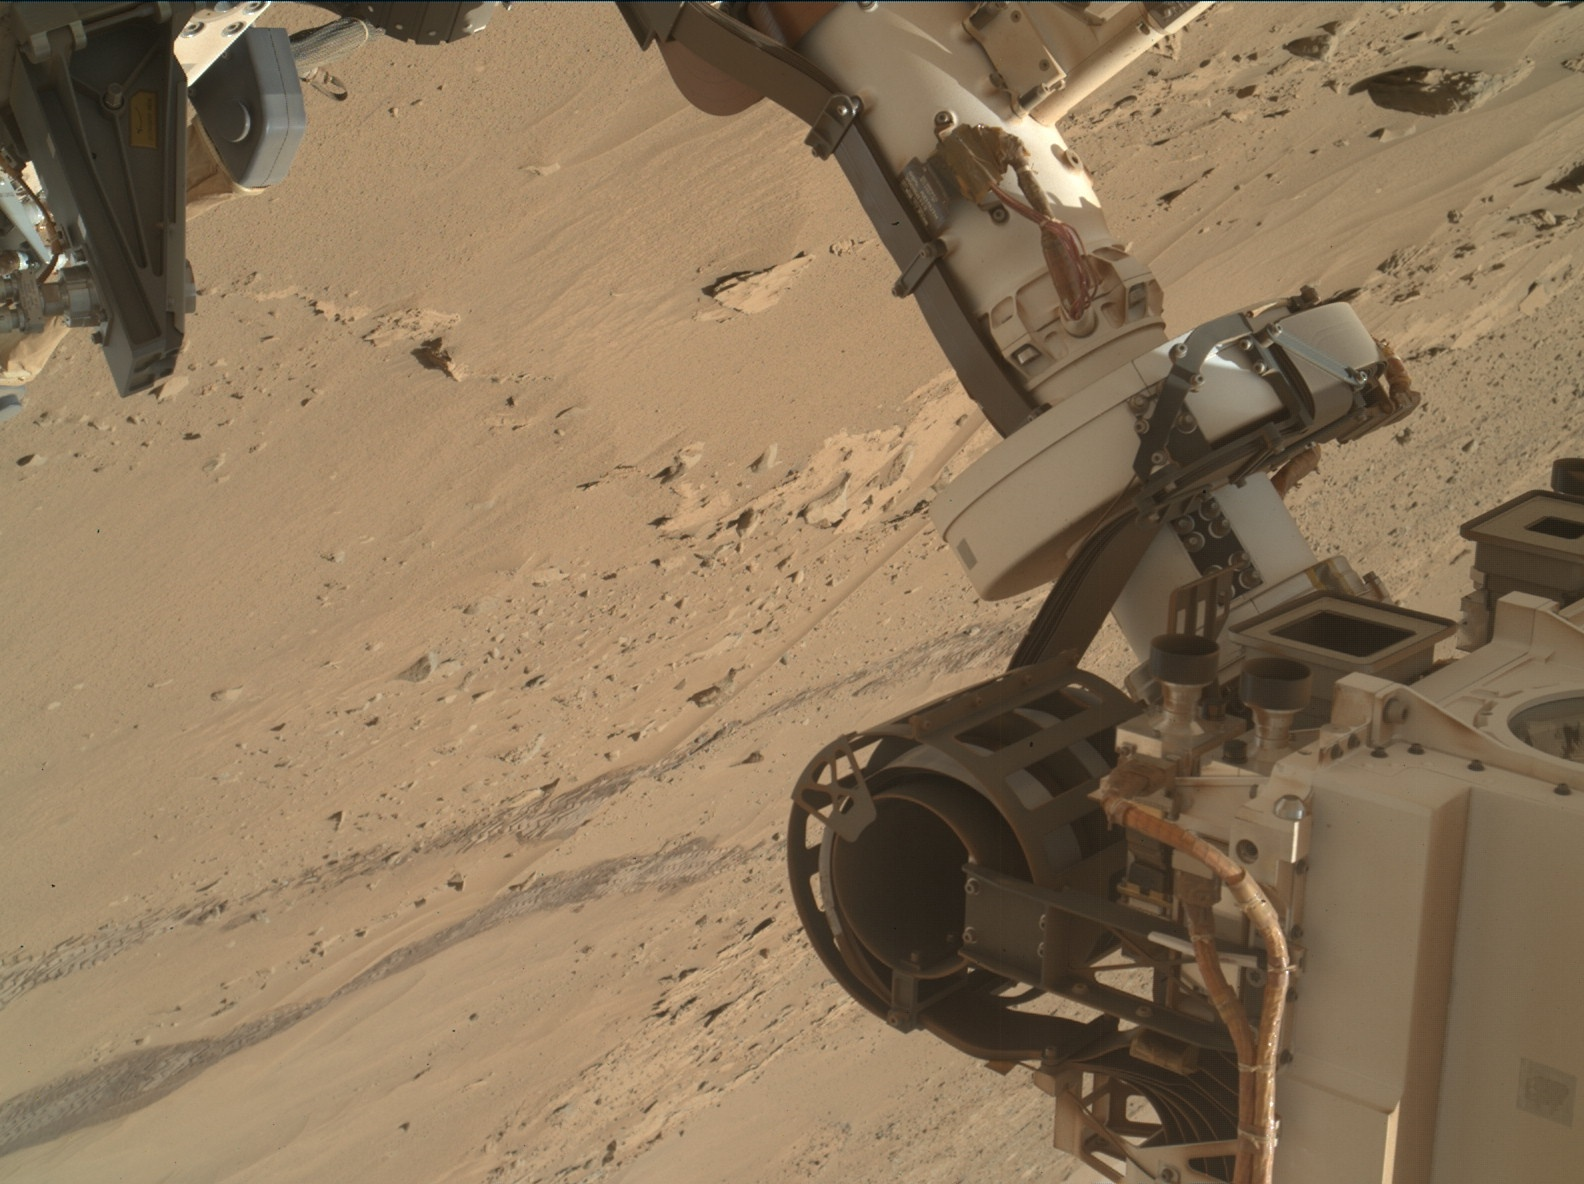 Nasa's Mars rover Curiosity acquired this image using its Mars Hand Lens Imager (MAHLI) on Sol 613, at drive 1330, site number 31